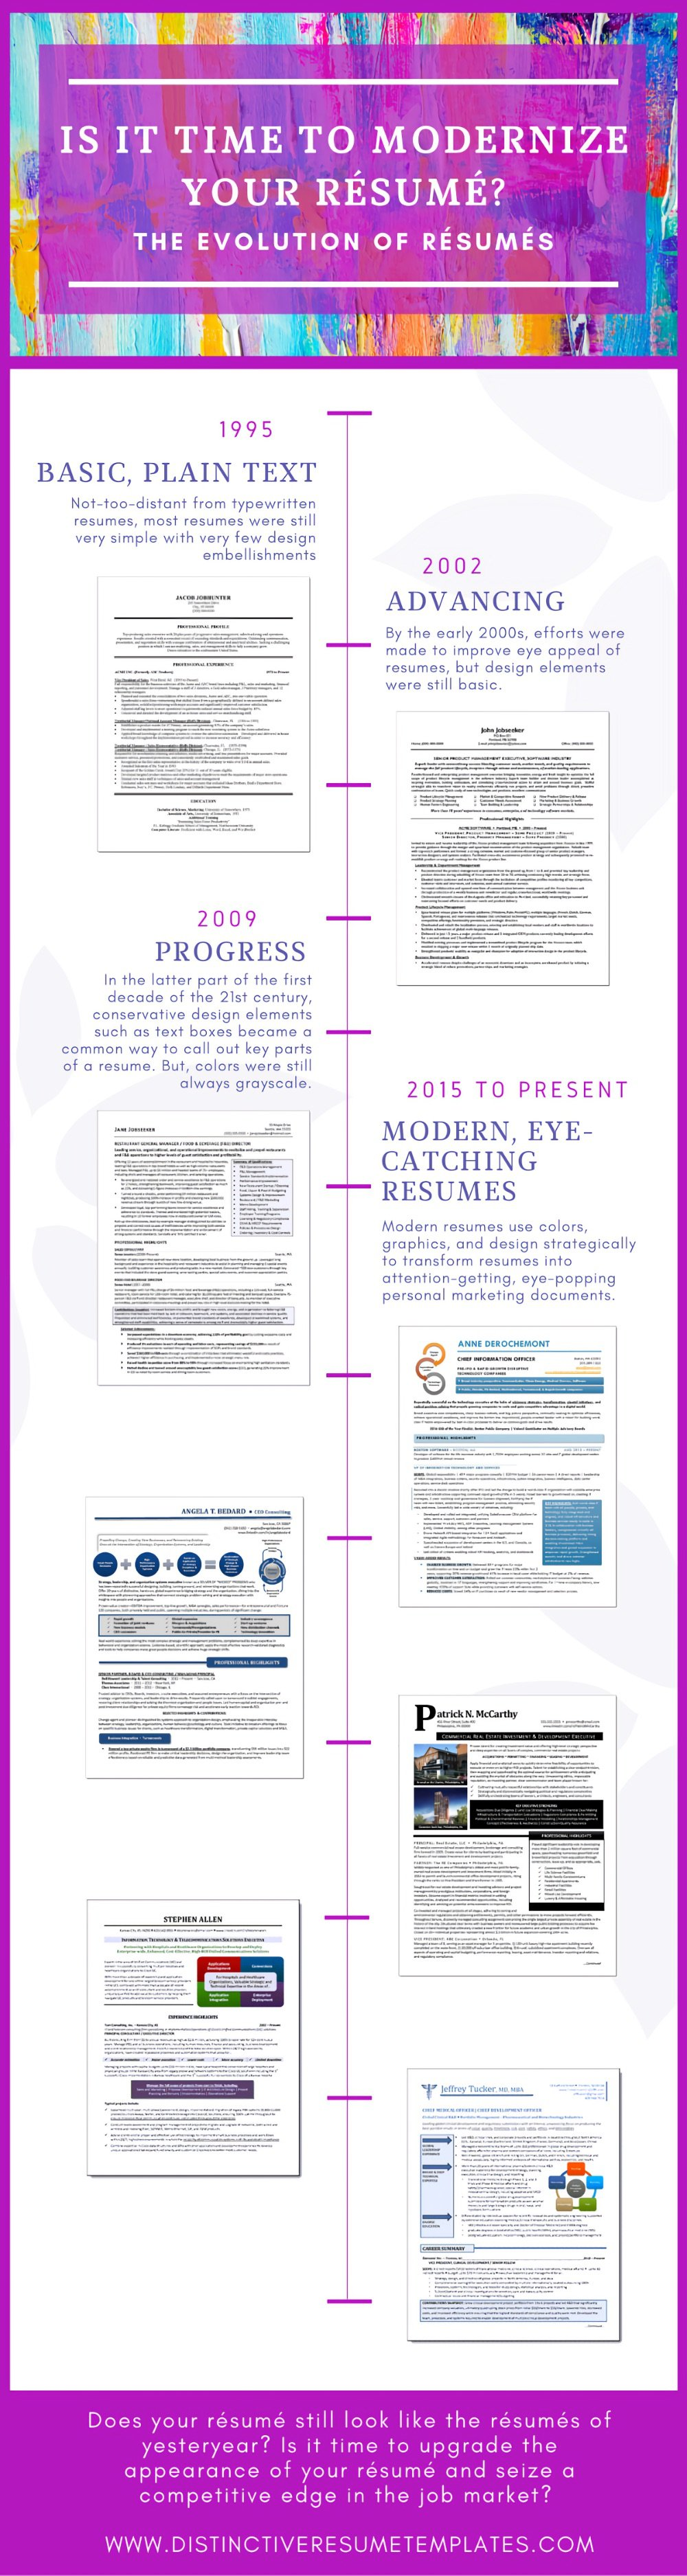 The Evolution of Resume Styles – Is It Time to Modernize Yours?